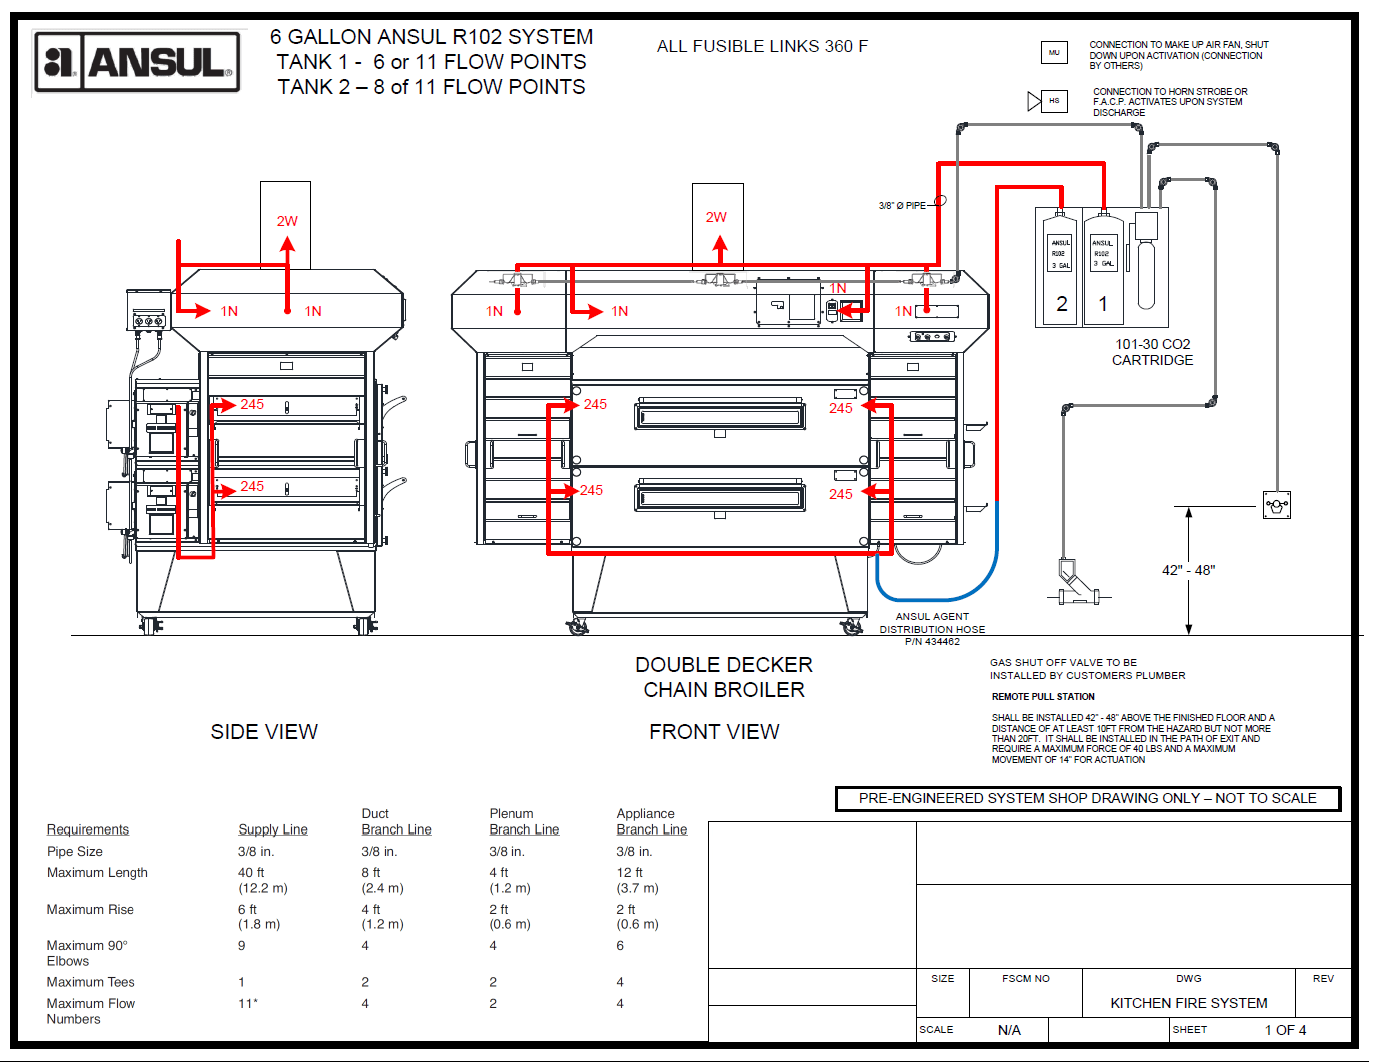 cat5 home network wiring diagram with Mac Valve 9 Pin Pinout Diagrams Wiring Diagrams on John Deere 332 Voltage Regulator Wiring Diagram moreover Wire And Cable Manufacturers Wiring Diagrams also Wire Diagram Home Junction Box as well Home Office Ether  Wiring Diagram further Trailer Wiring Diagram 7 Plug Truck 6 Wire 4 Flat 7 Round Blade Boat.